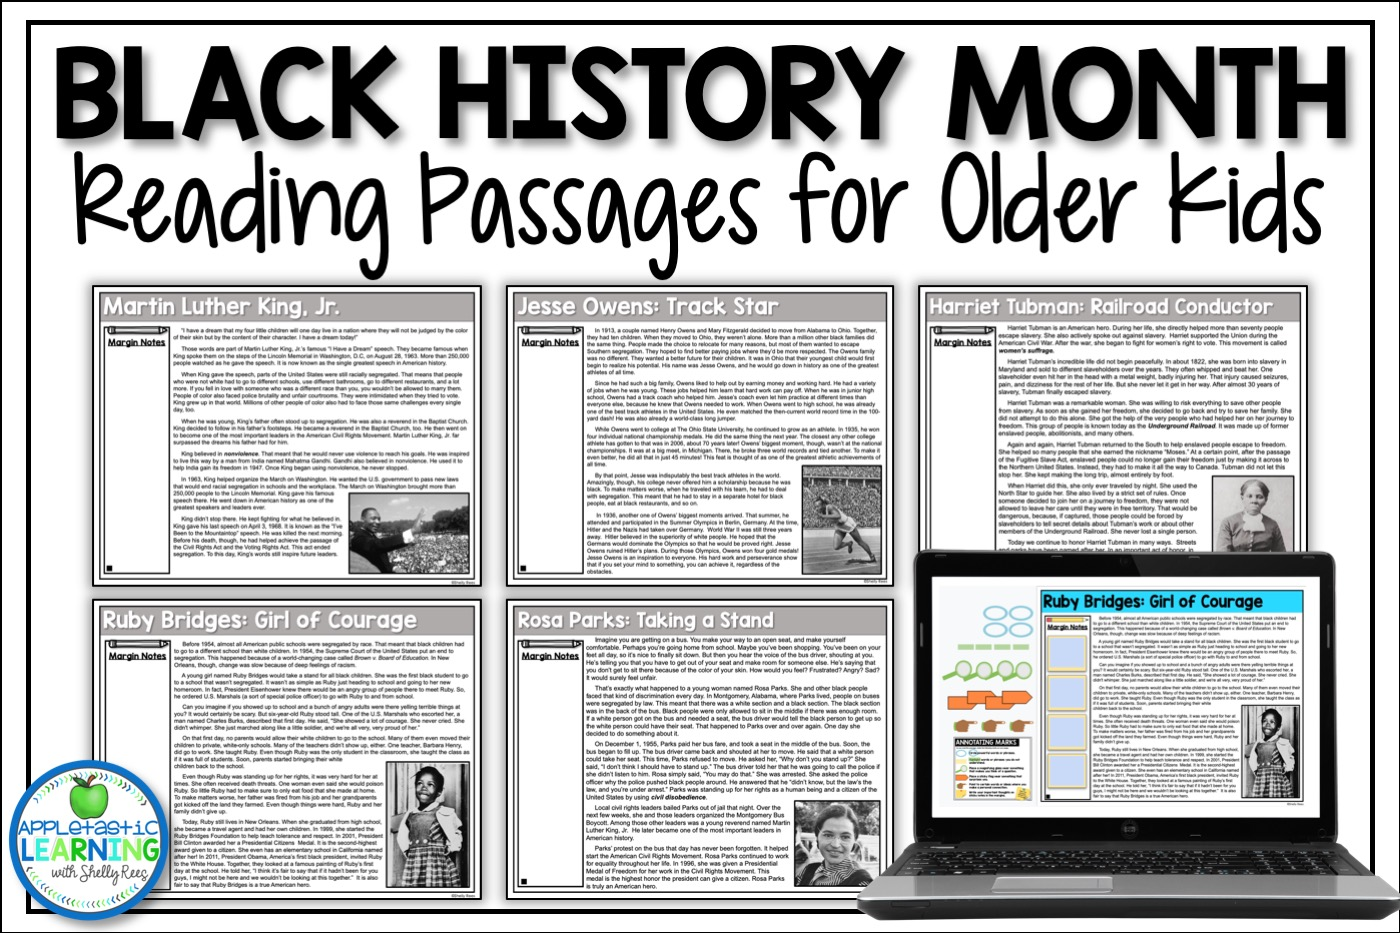 Black History Month Reading Passages Close Reading Activities for Upper Elementary Classrooms